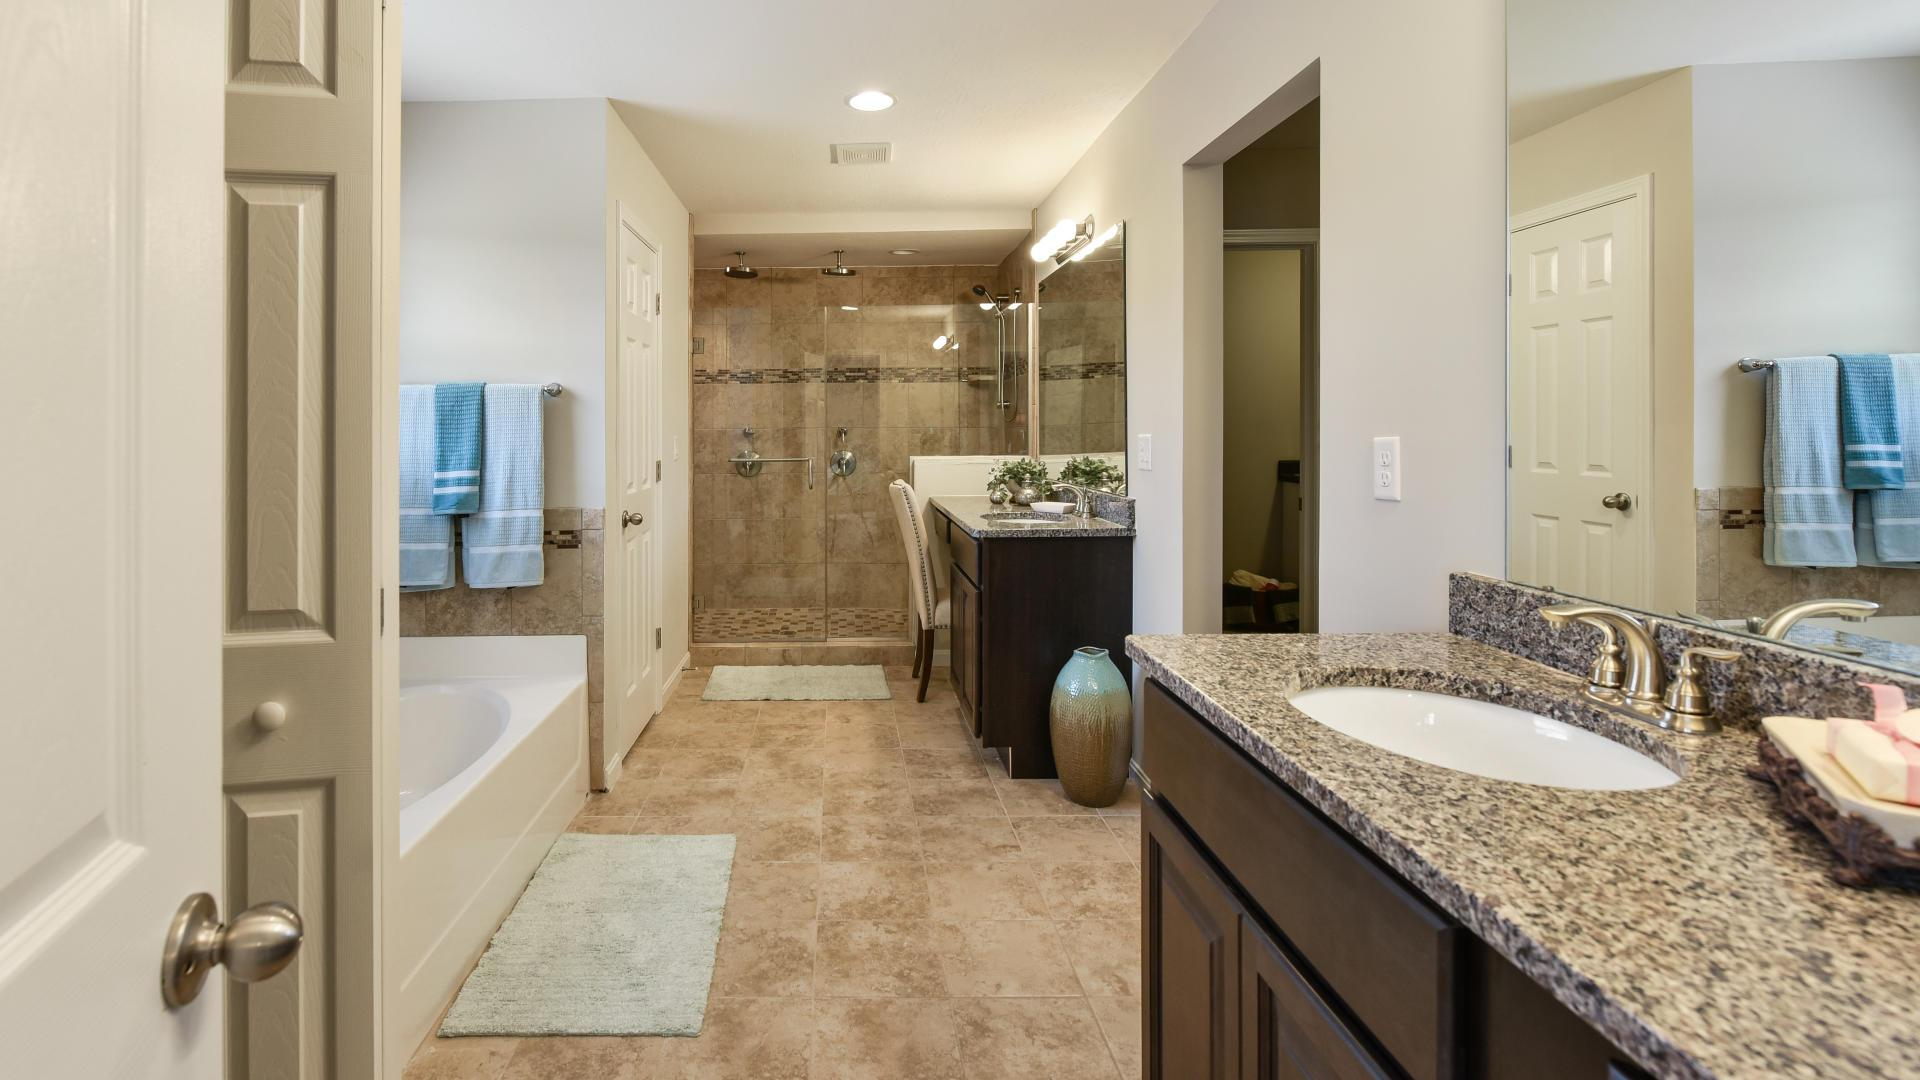 Bathroom featured in the Birmingham By Maronda Homes in Pittsburgh, PA